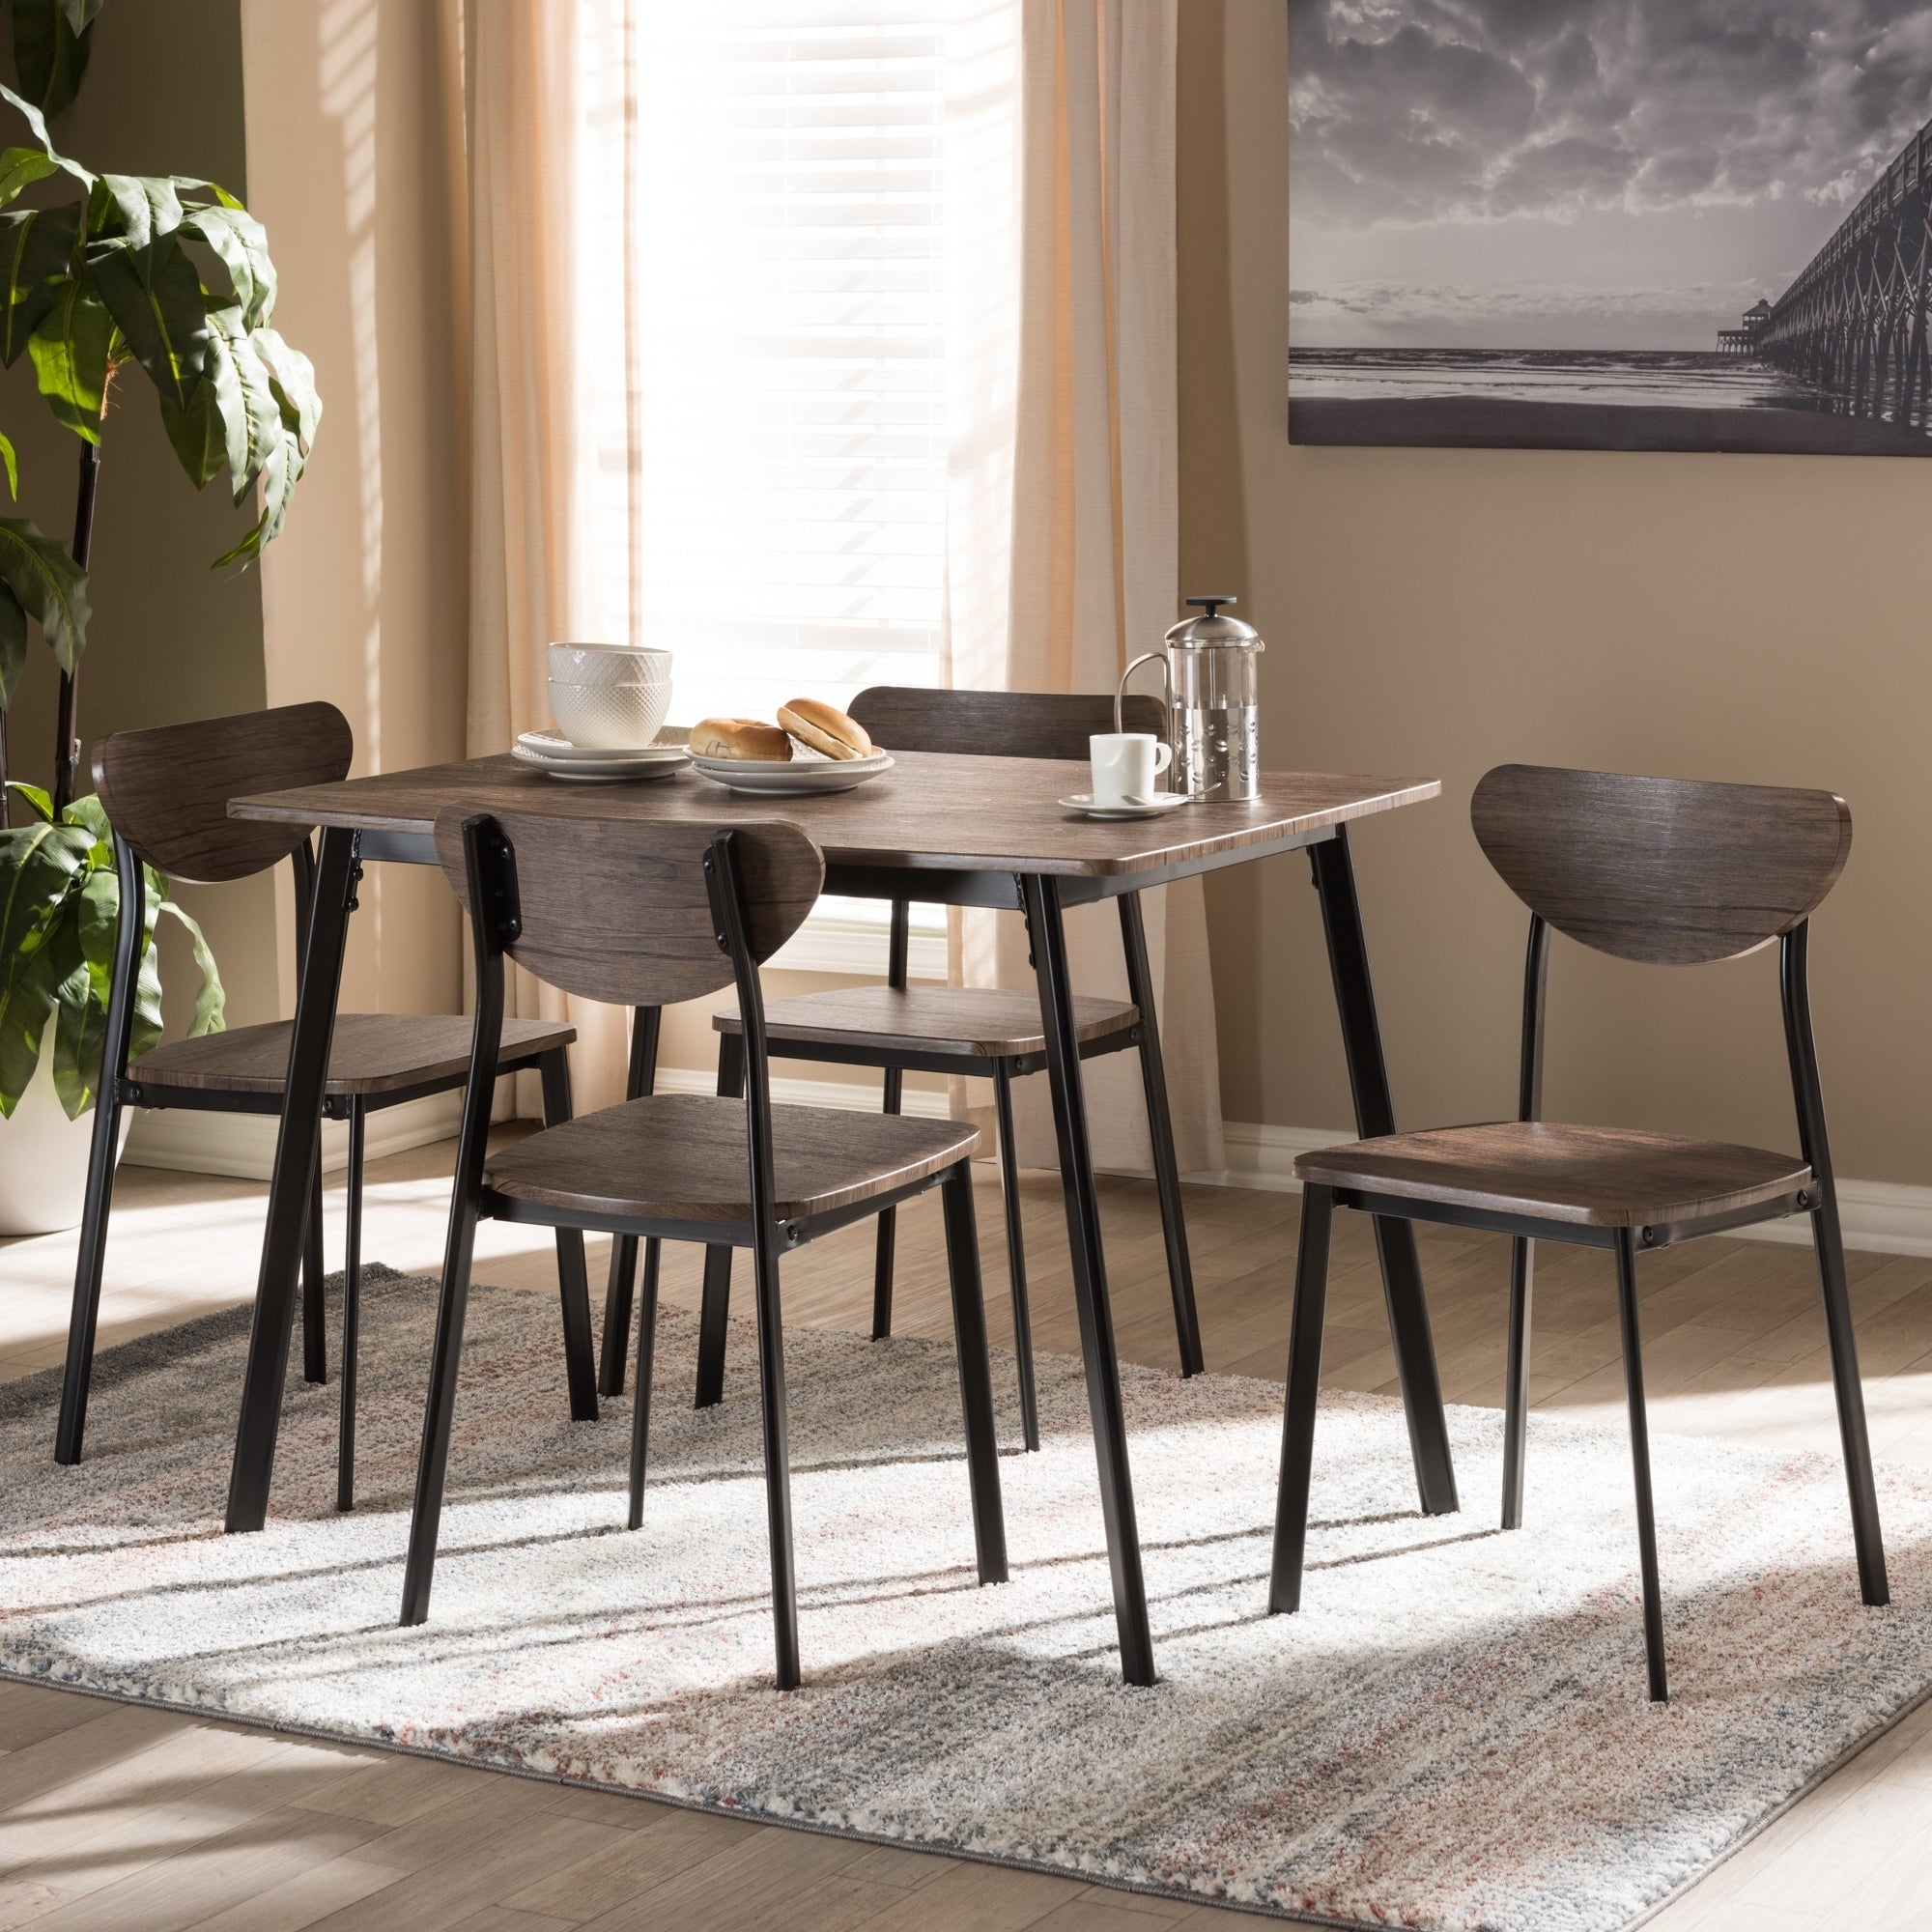 Shop Mid Century 5 Piece Dining Set By Baxton Studio Free Shipping